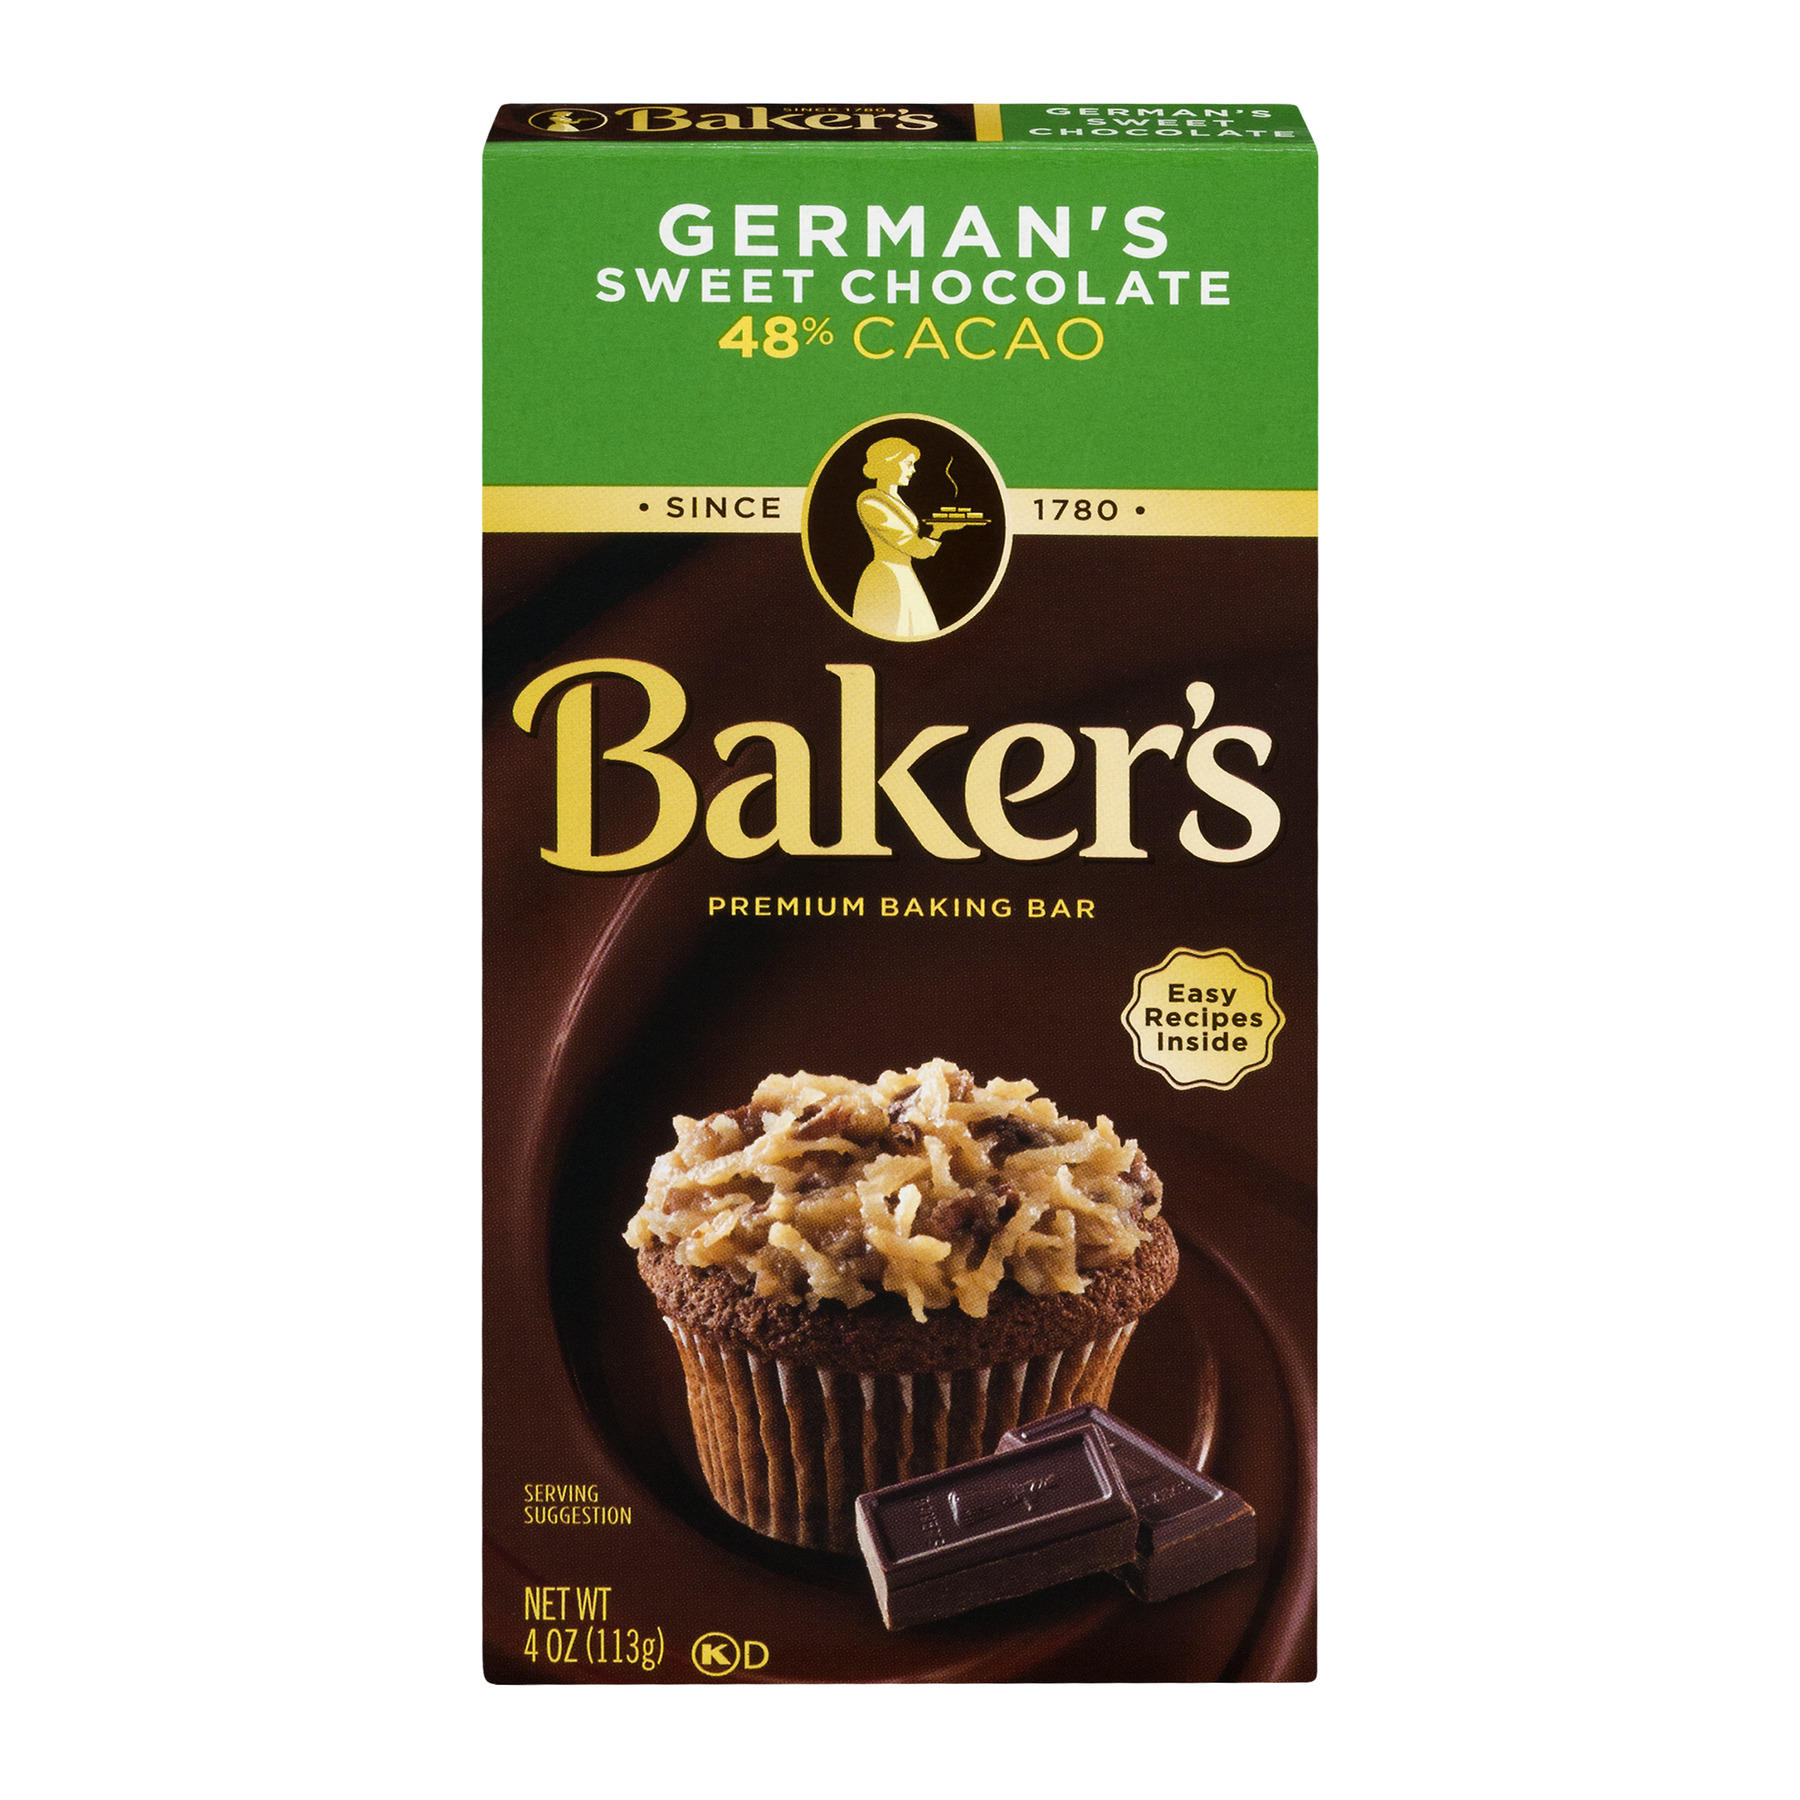 Baker's Baking Chocolate Bar 48% Cacao German's Sweet, 4 Oz